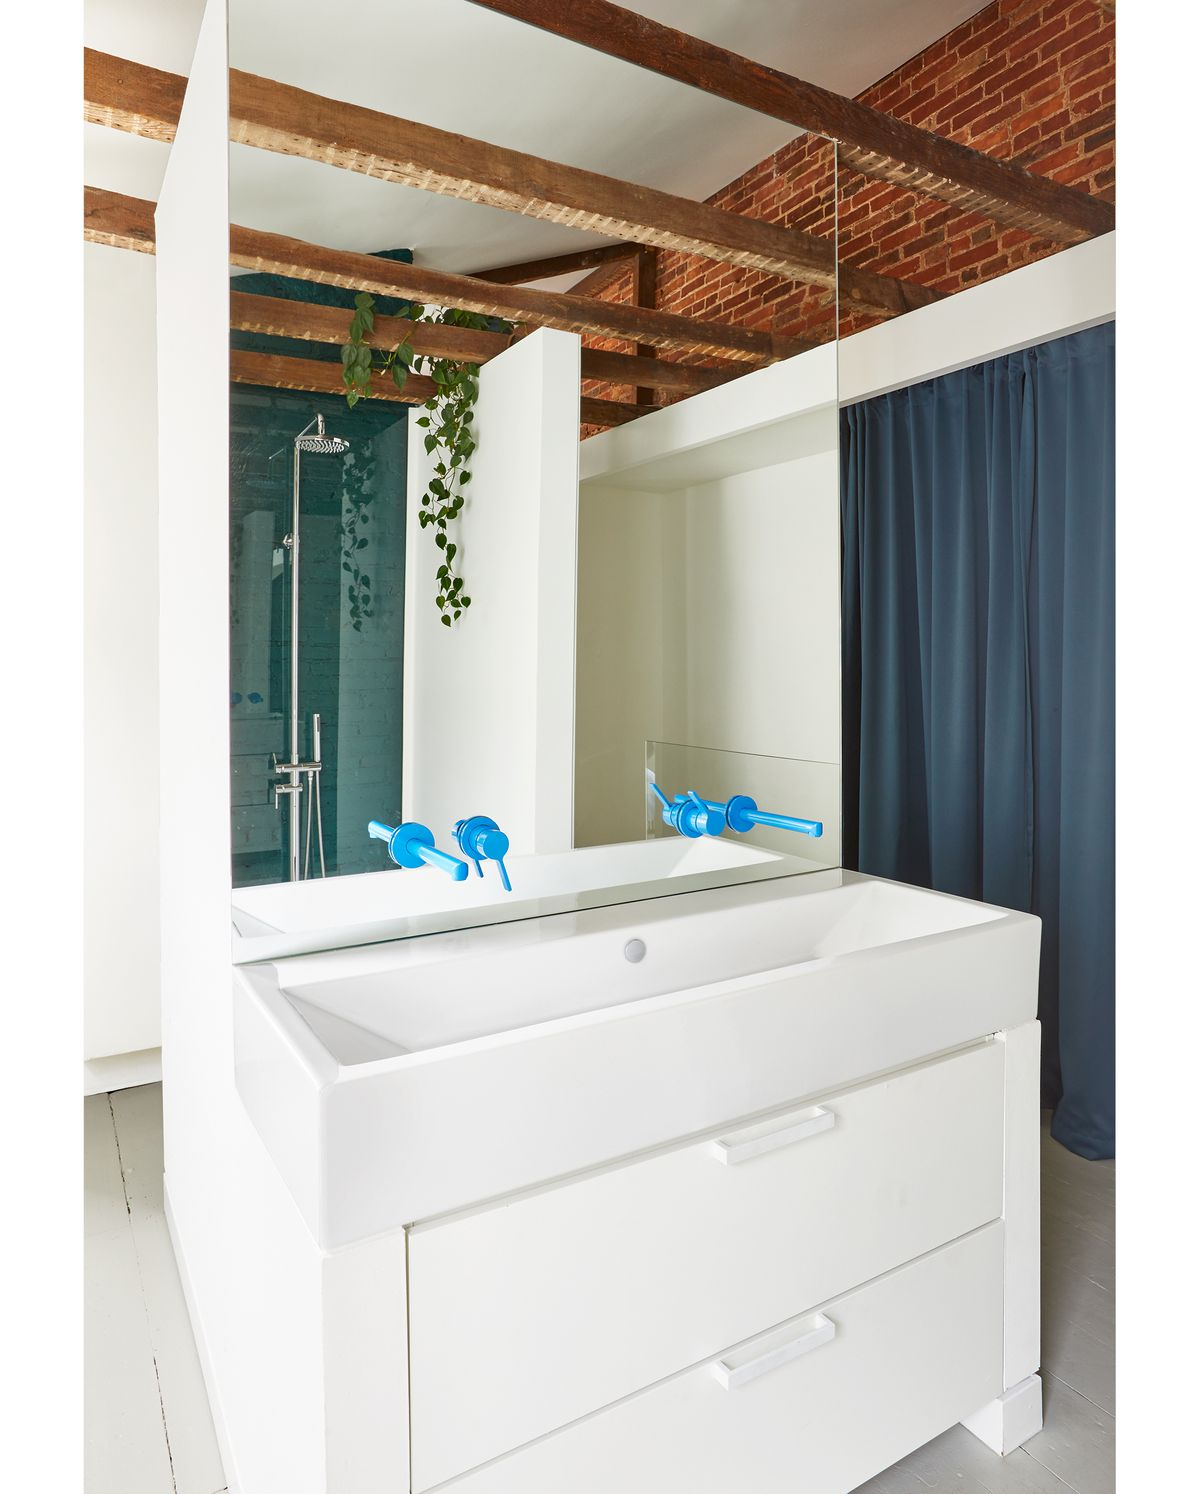 A bathroom. There is a white sink with storage drawers underneath. Above the sink is a mirror. Protruding from the mirror are blue faucet fixtures. The ceiling has exposed wooden beams and there is exposed red brick along the top of the walls.